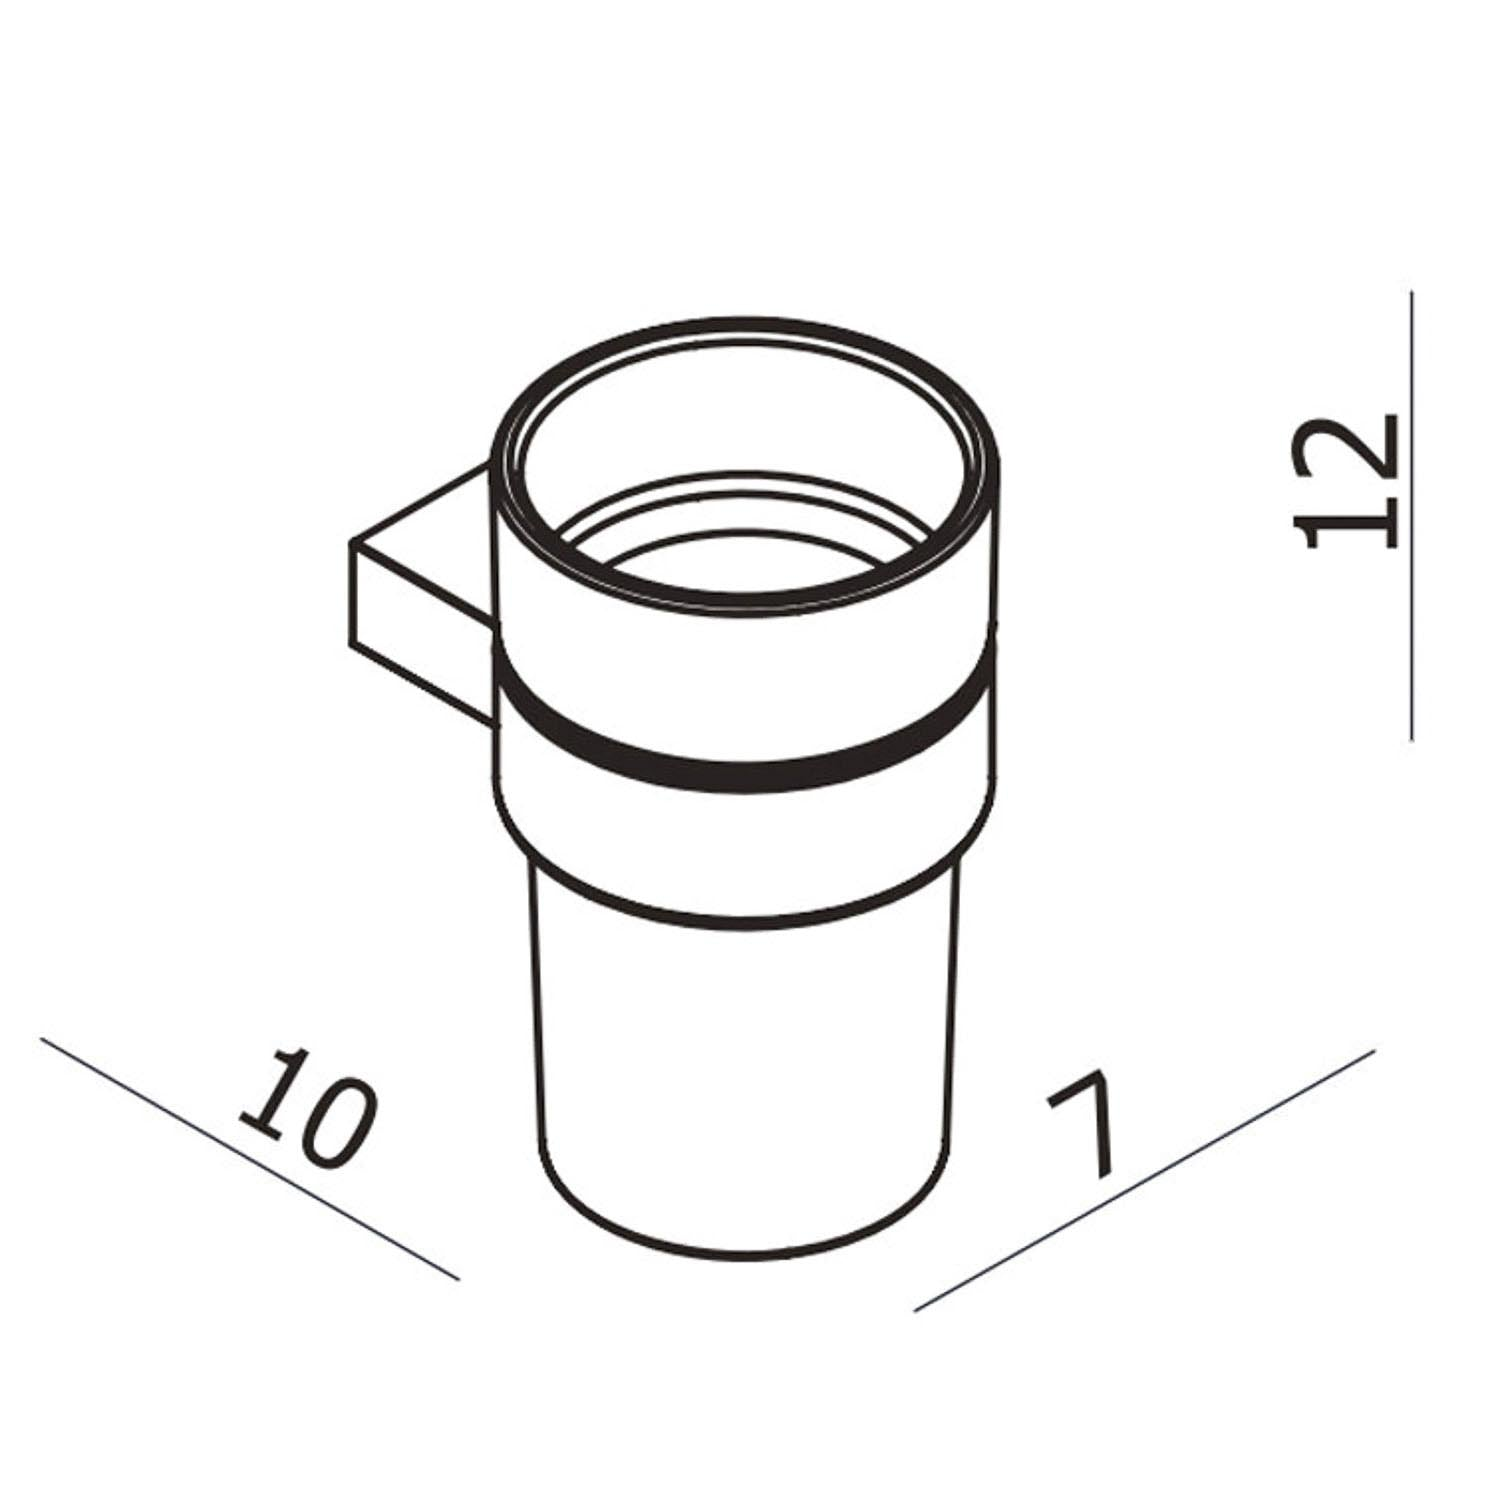 Modale Wall Tumbler with a cloudy glass holder and chrome finish bracket dimensional drawing